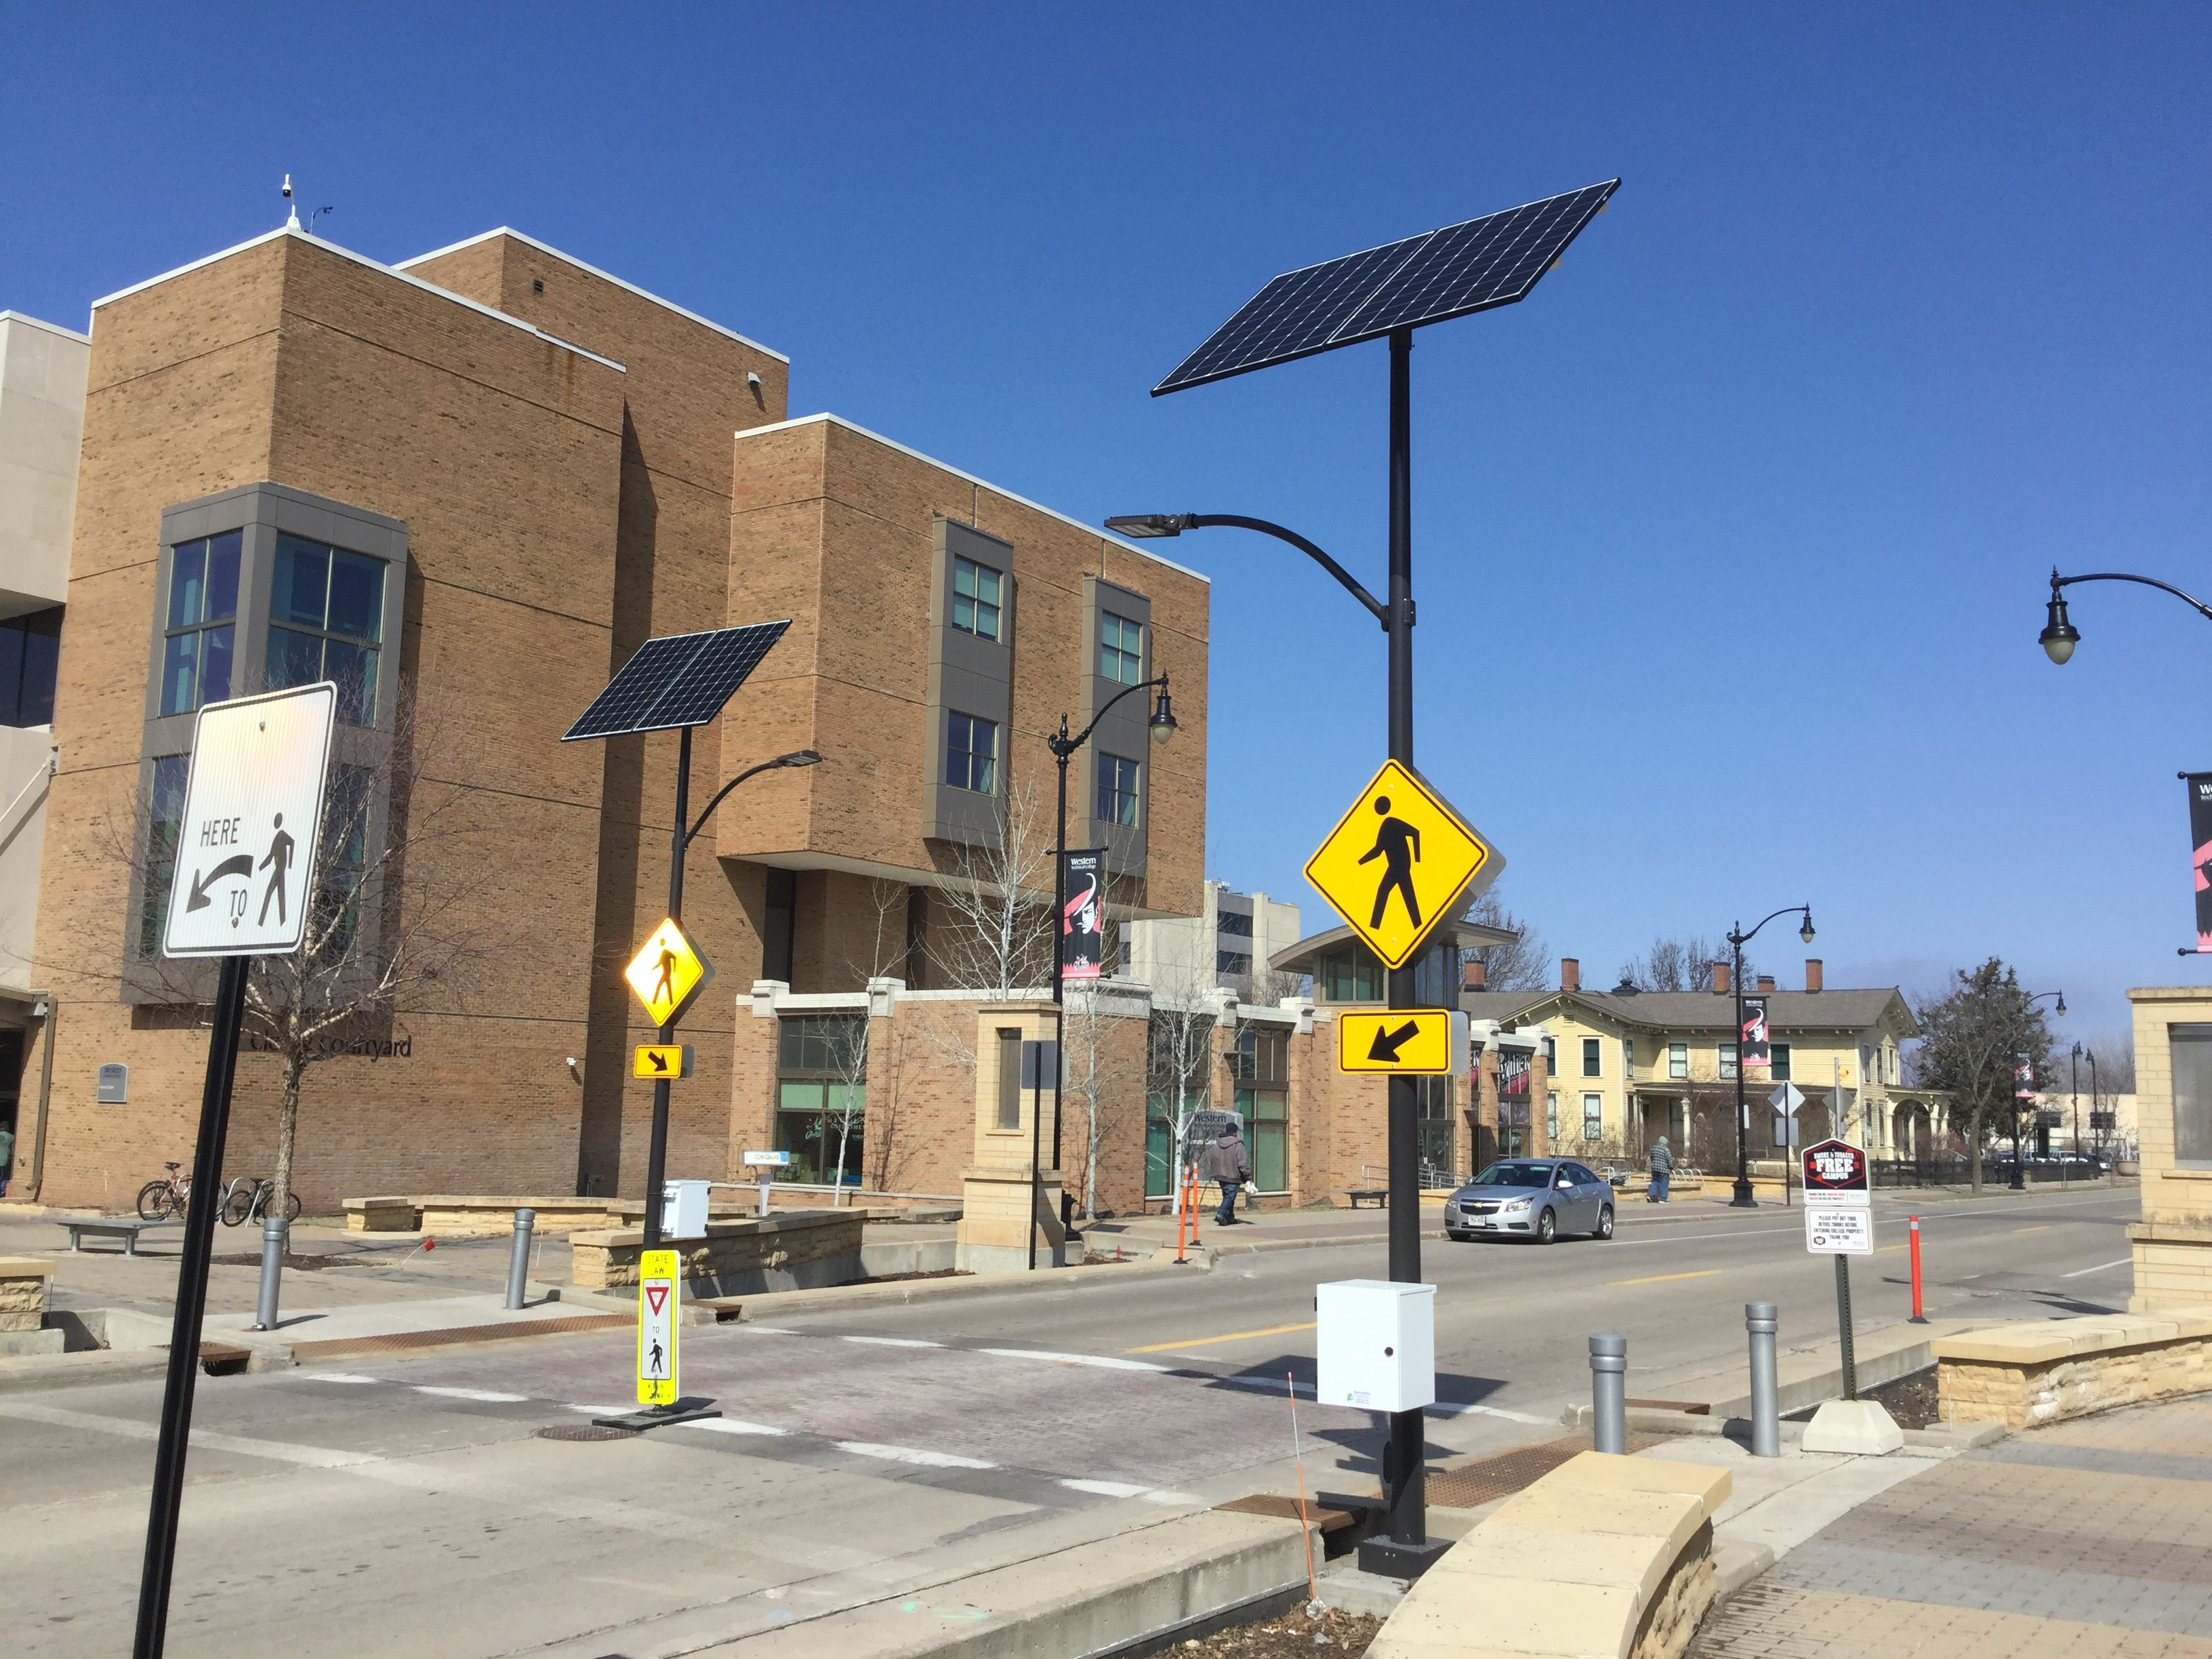 60 Watt Solar Street Lights